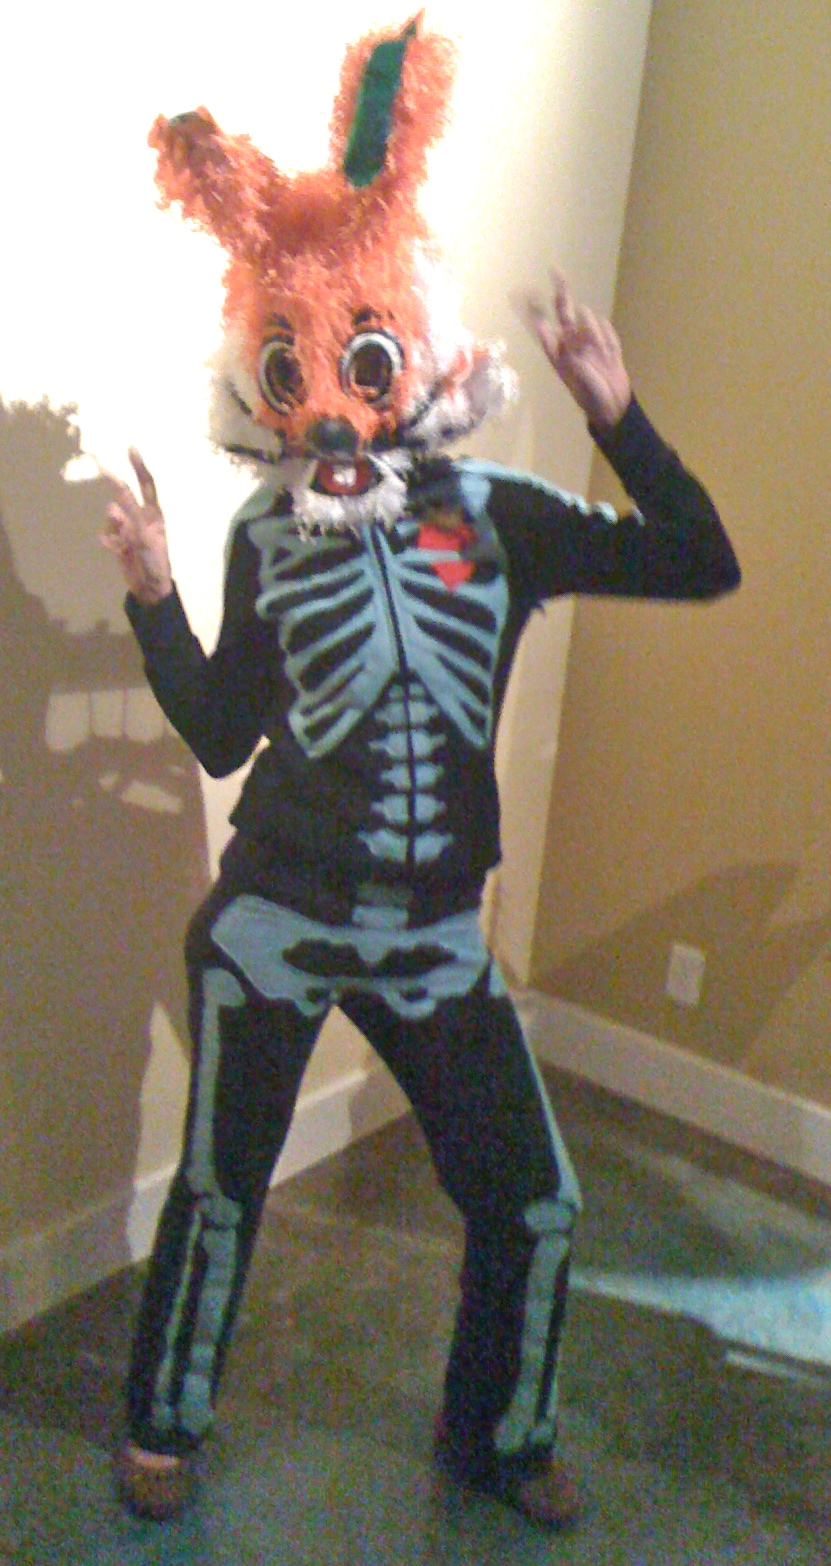 Halloween costume utilizing pinata mask & applique, collection of the artist.